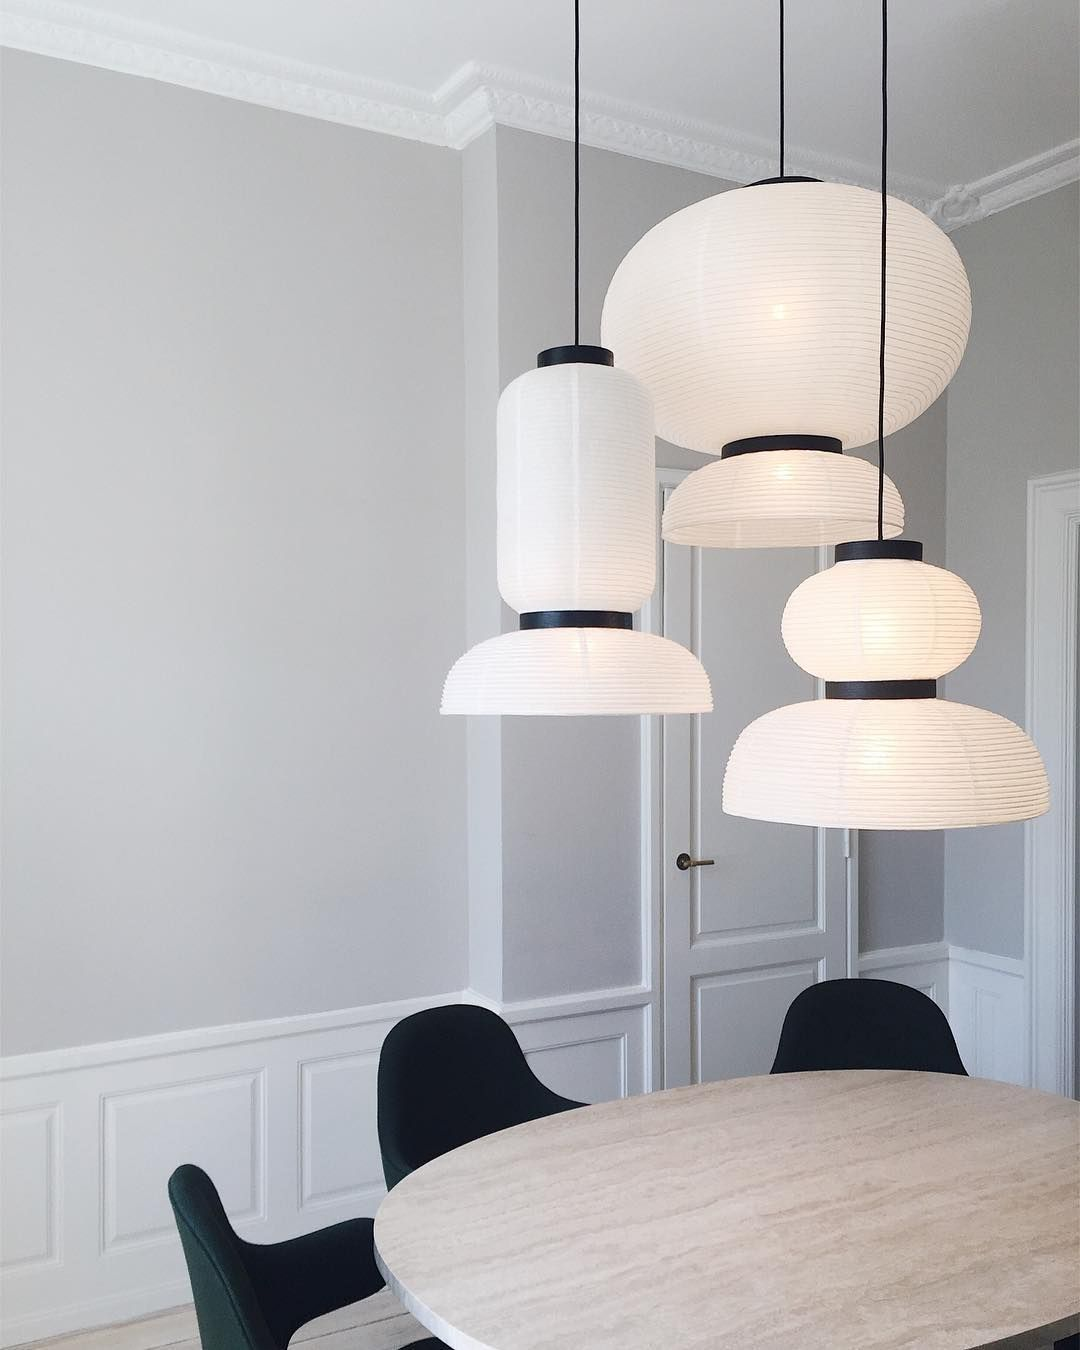 Formakami Paper Lamps Designed By Jaime Hayon For Tradition Interieur Verlichting Ideeen Verlichting